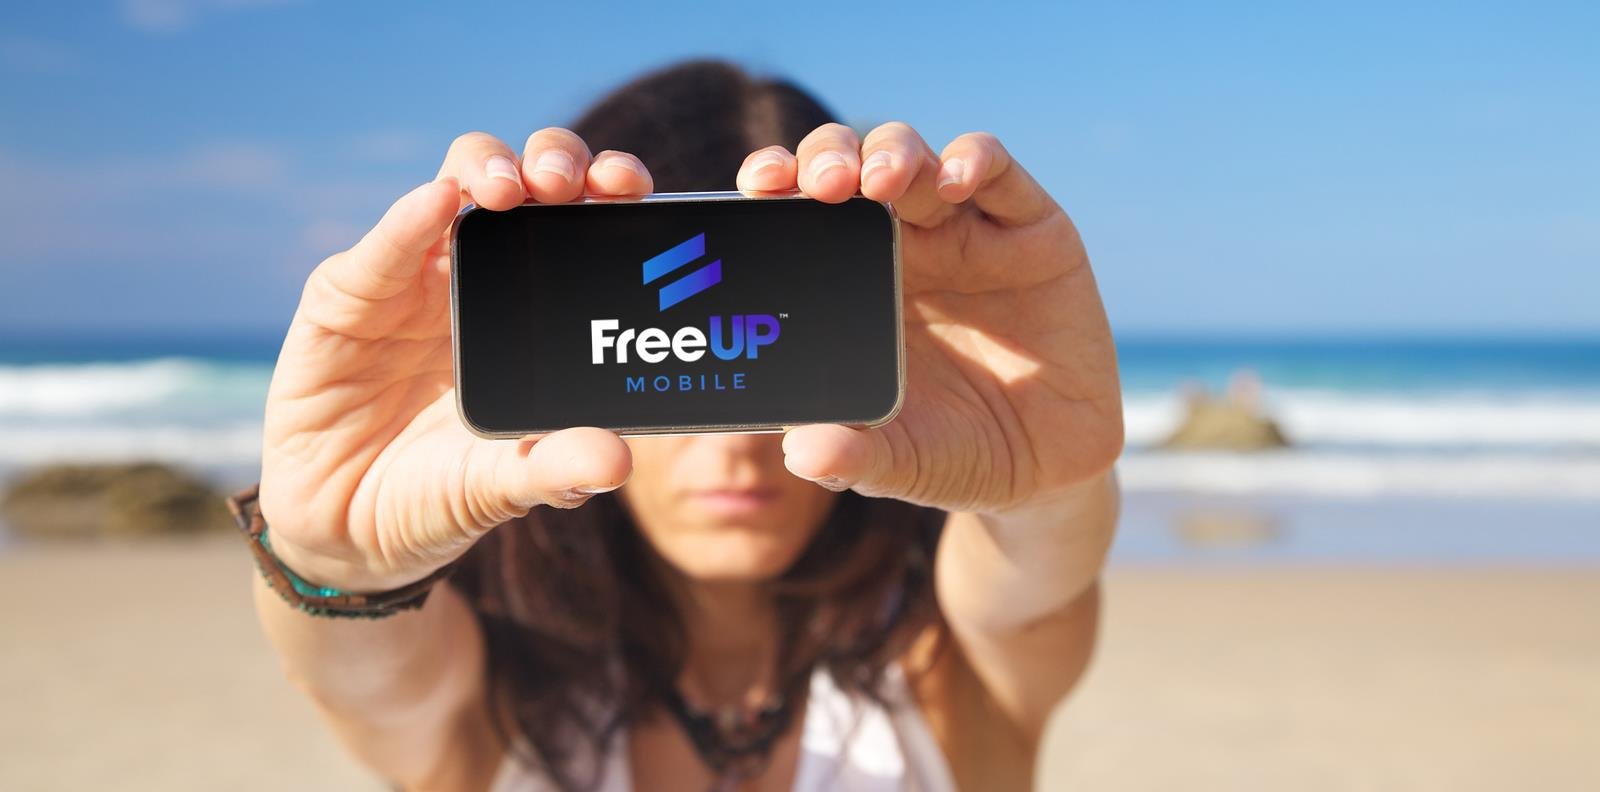 FreeUP Mobile Is The Latest MVNO To Hit The Market